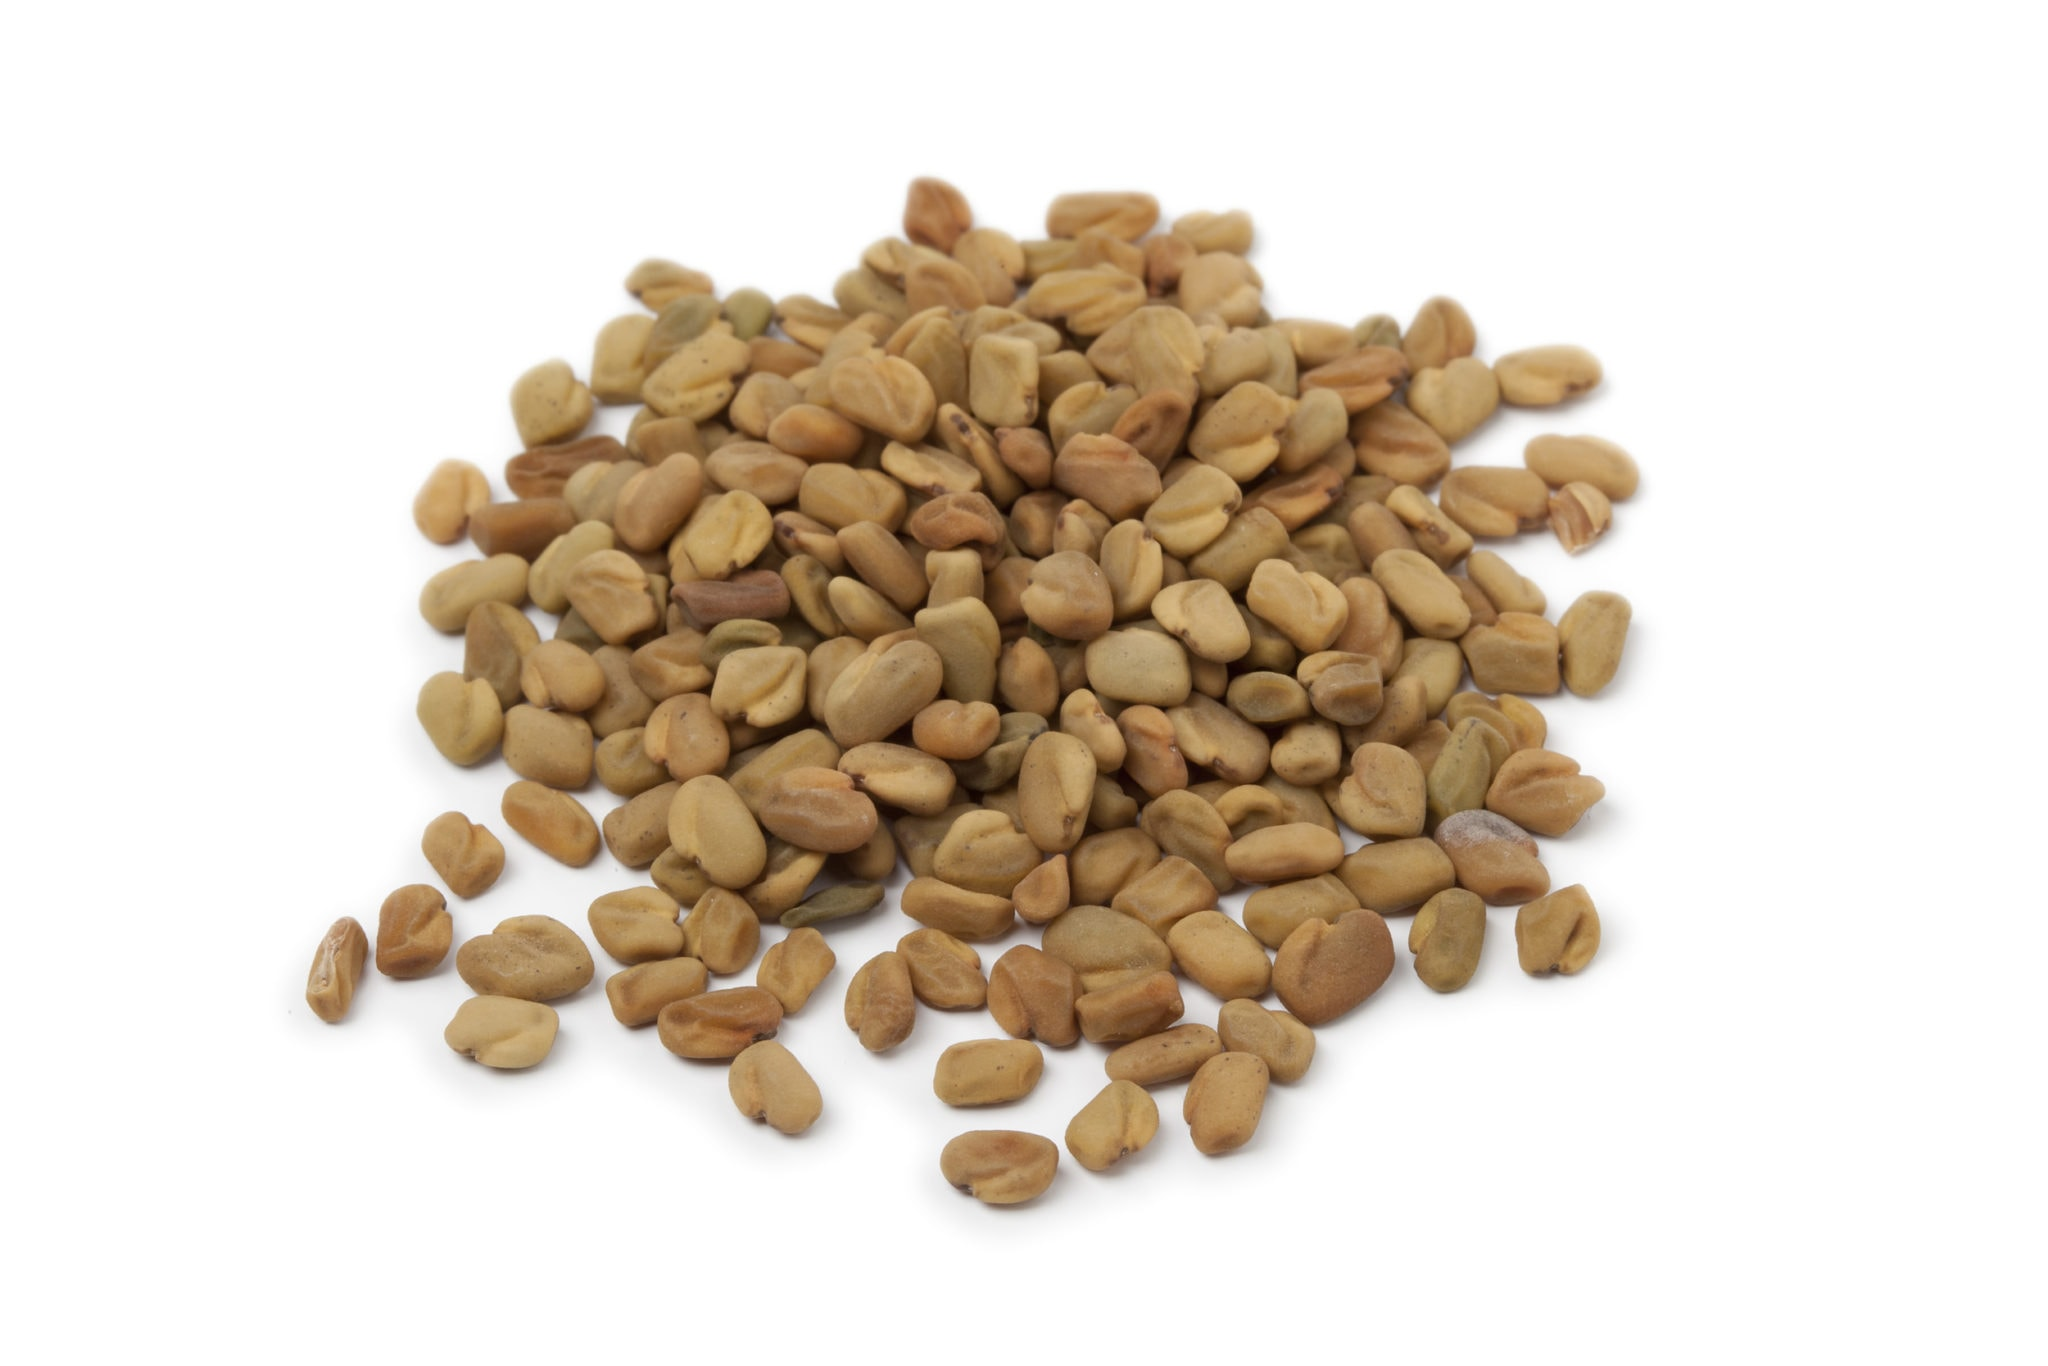 fenugreek seeds for sprouting